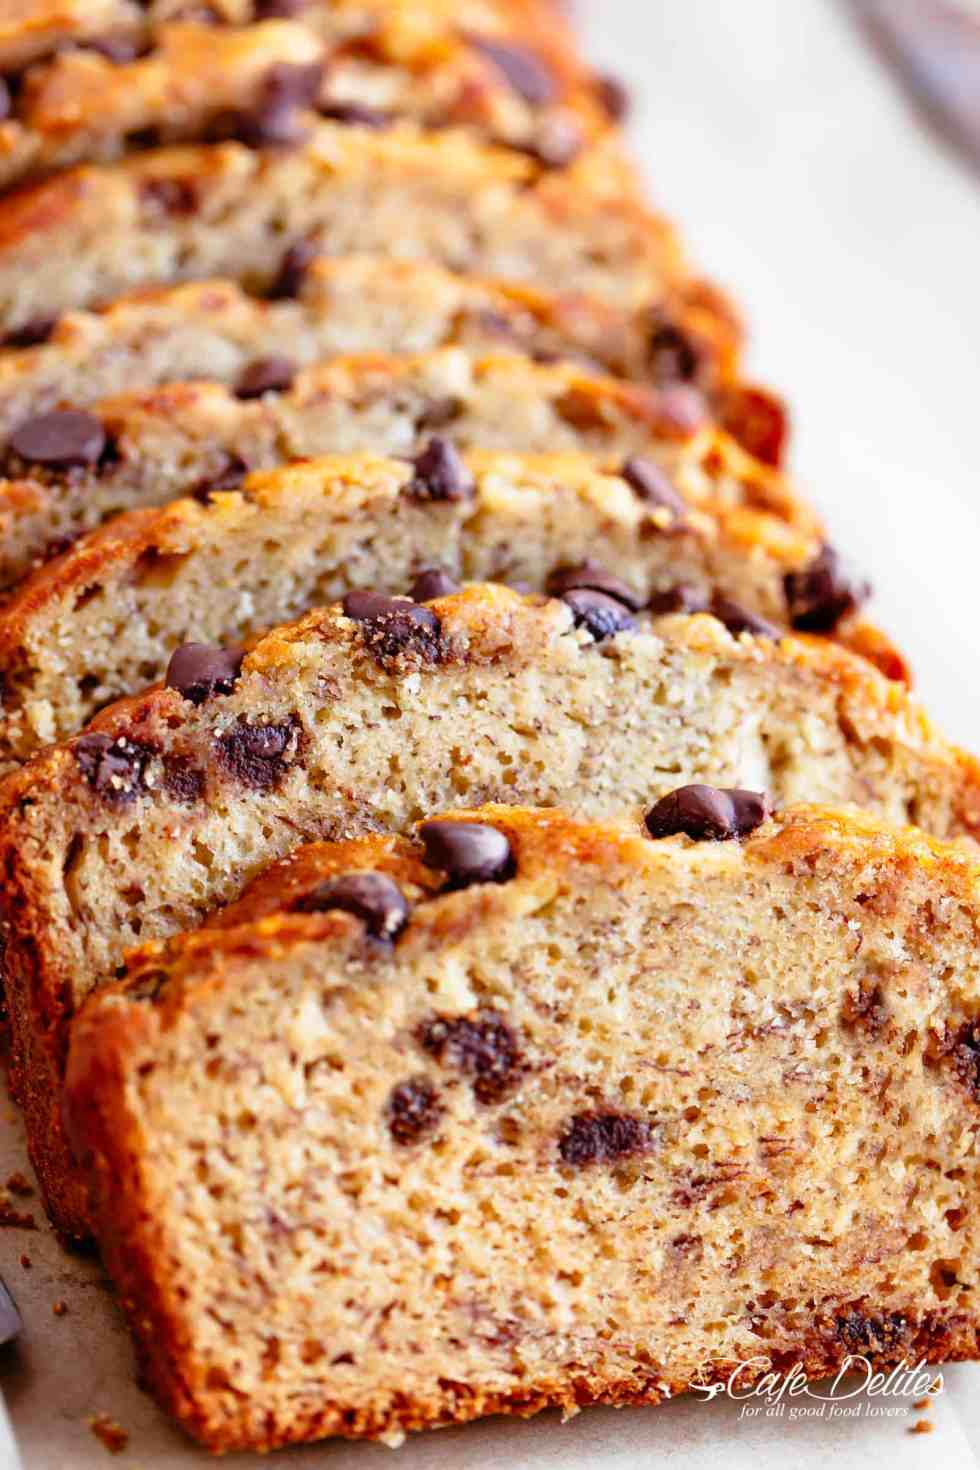 Best Banana Bread recipe with chocolate chips or nuts | cafedelites.com